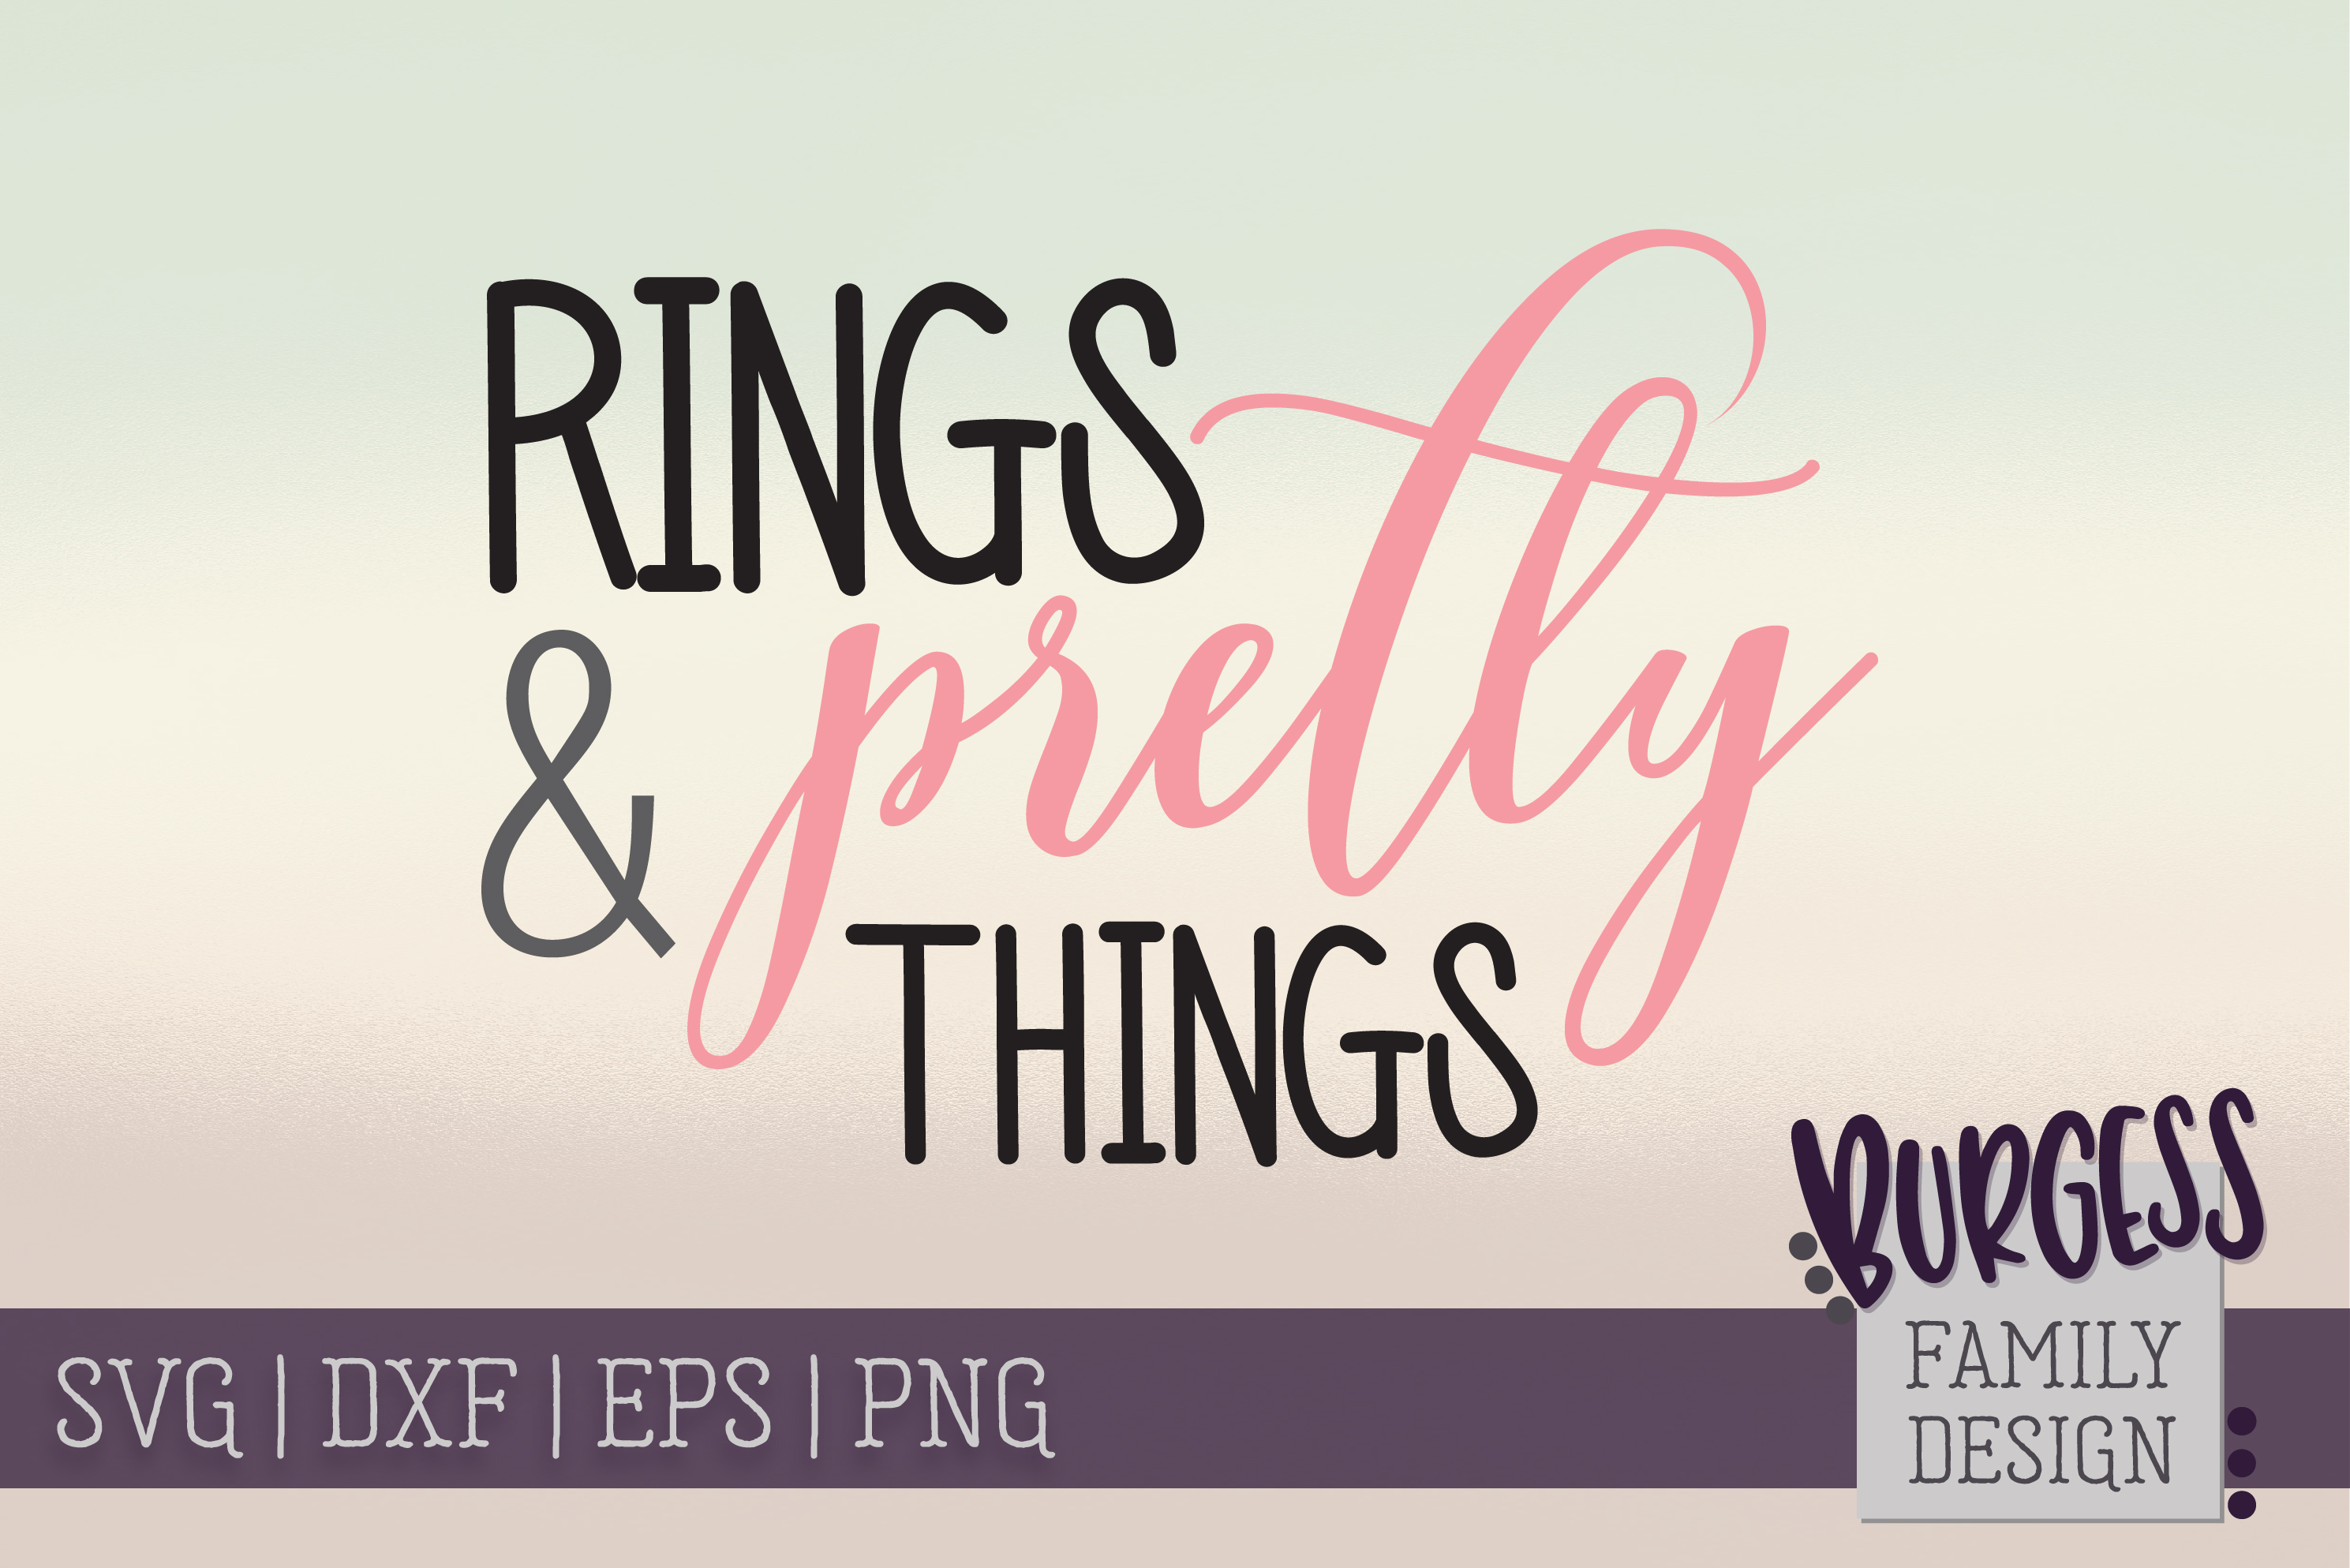 Rings & Pretty Things   SVG DXF EPS PNG example image 2